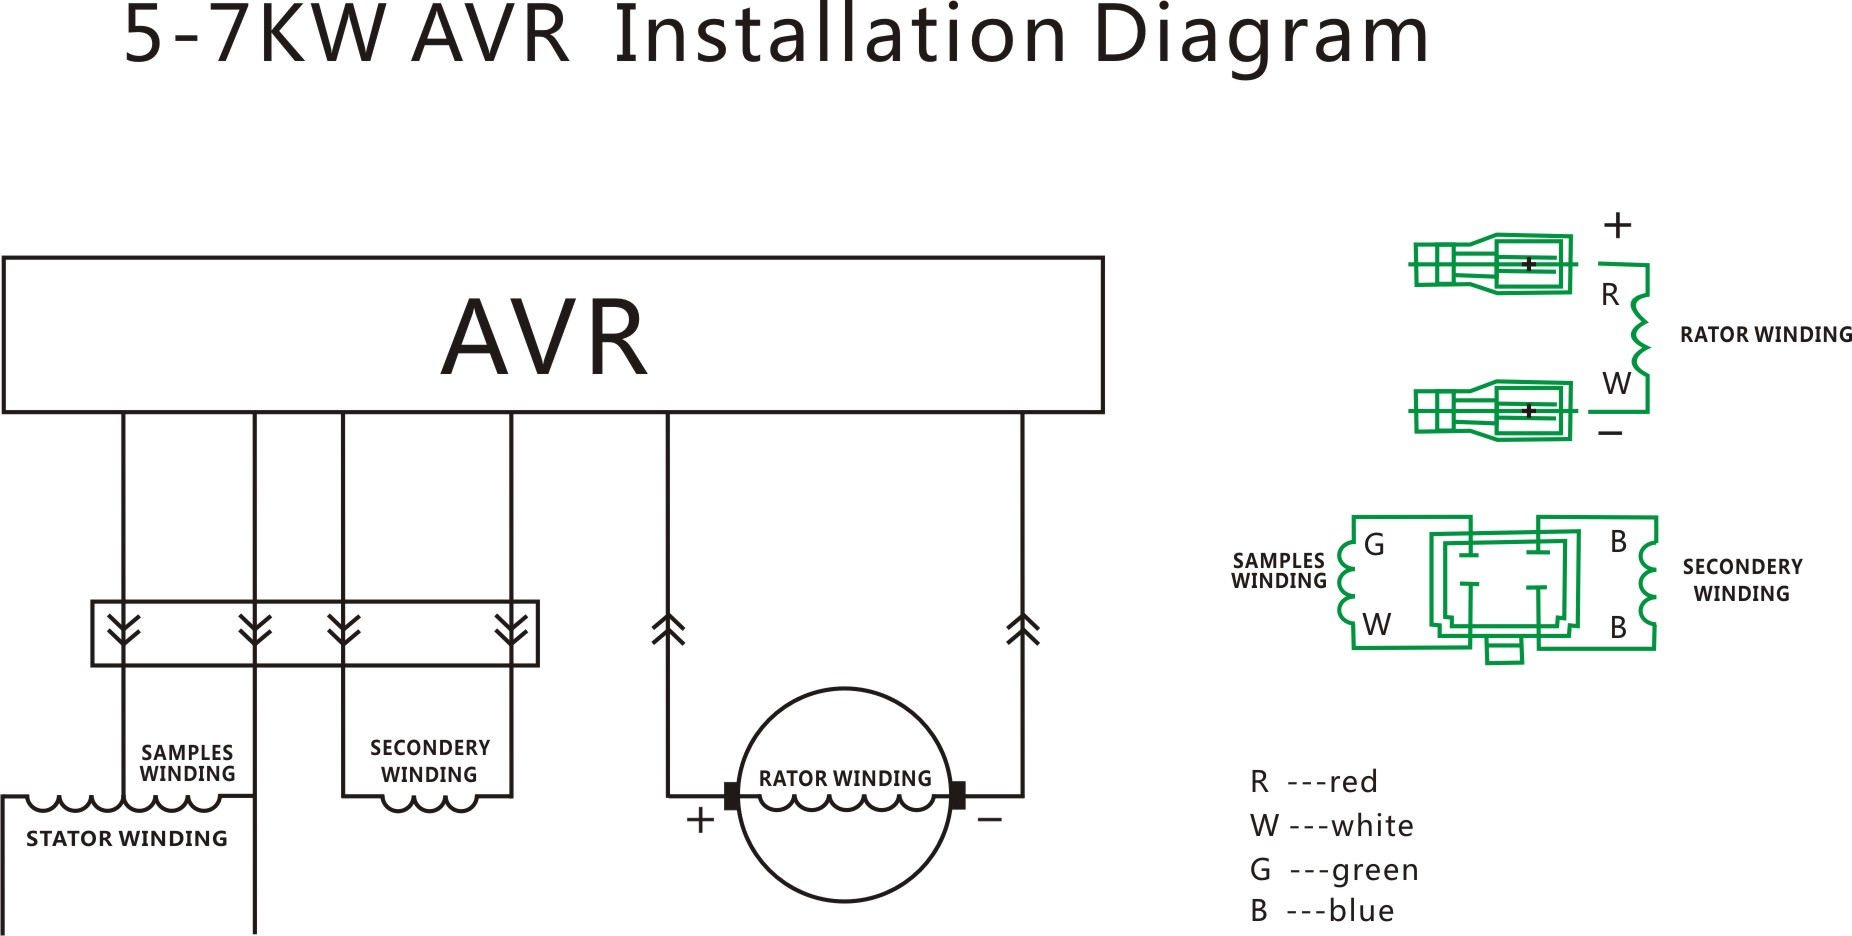 avr generator wiring diagram 3 phase generator wiring diagram with pmg and mx 341 avr